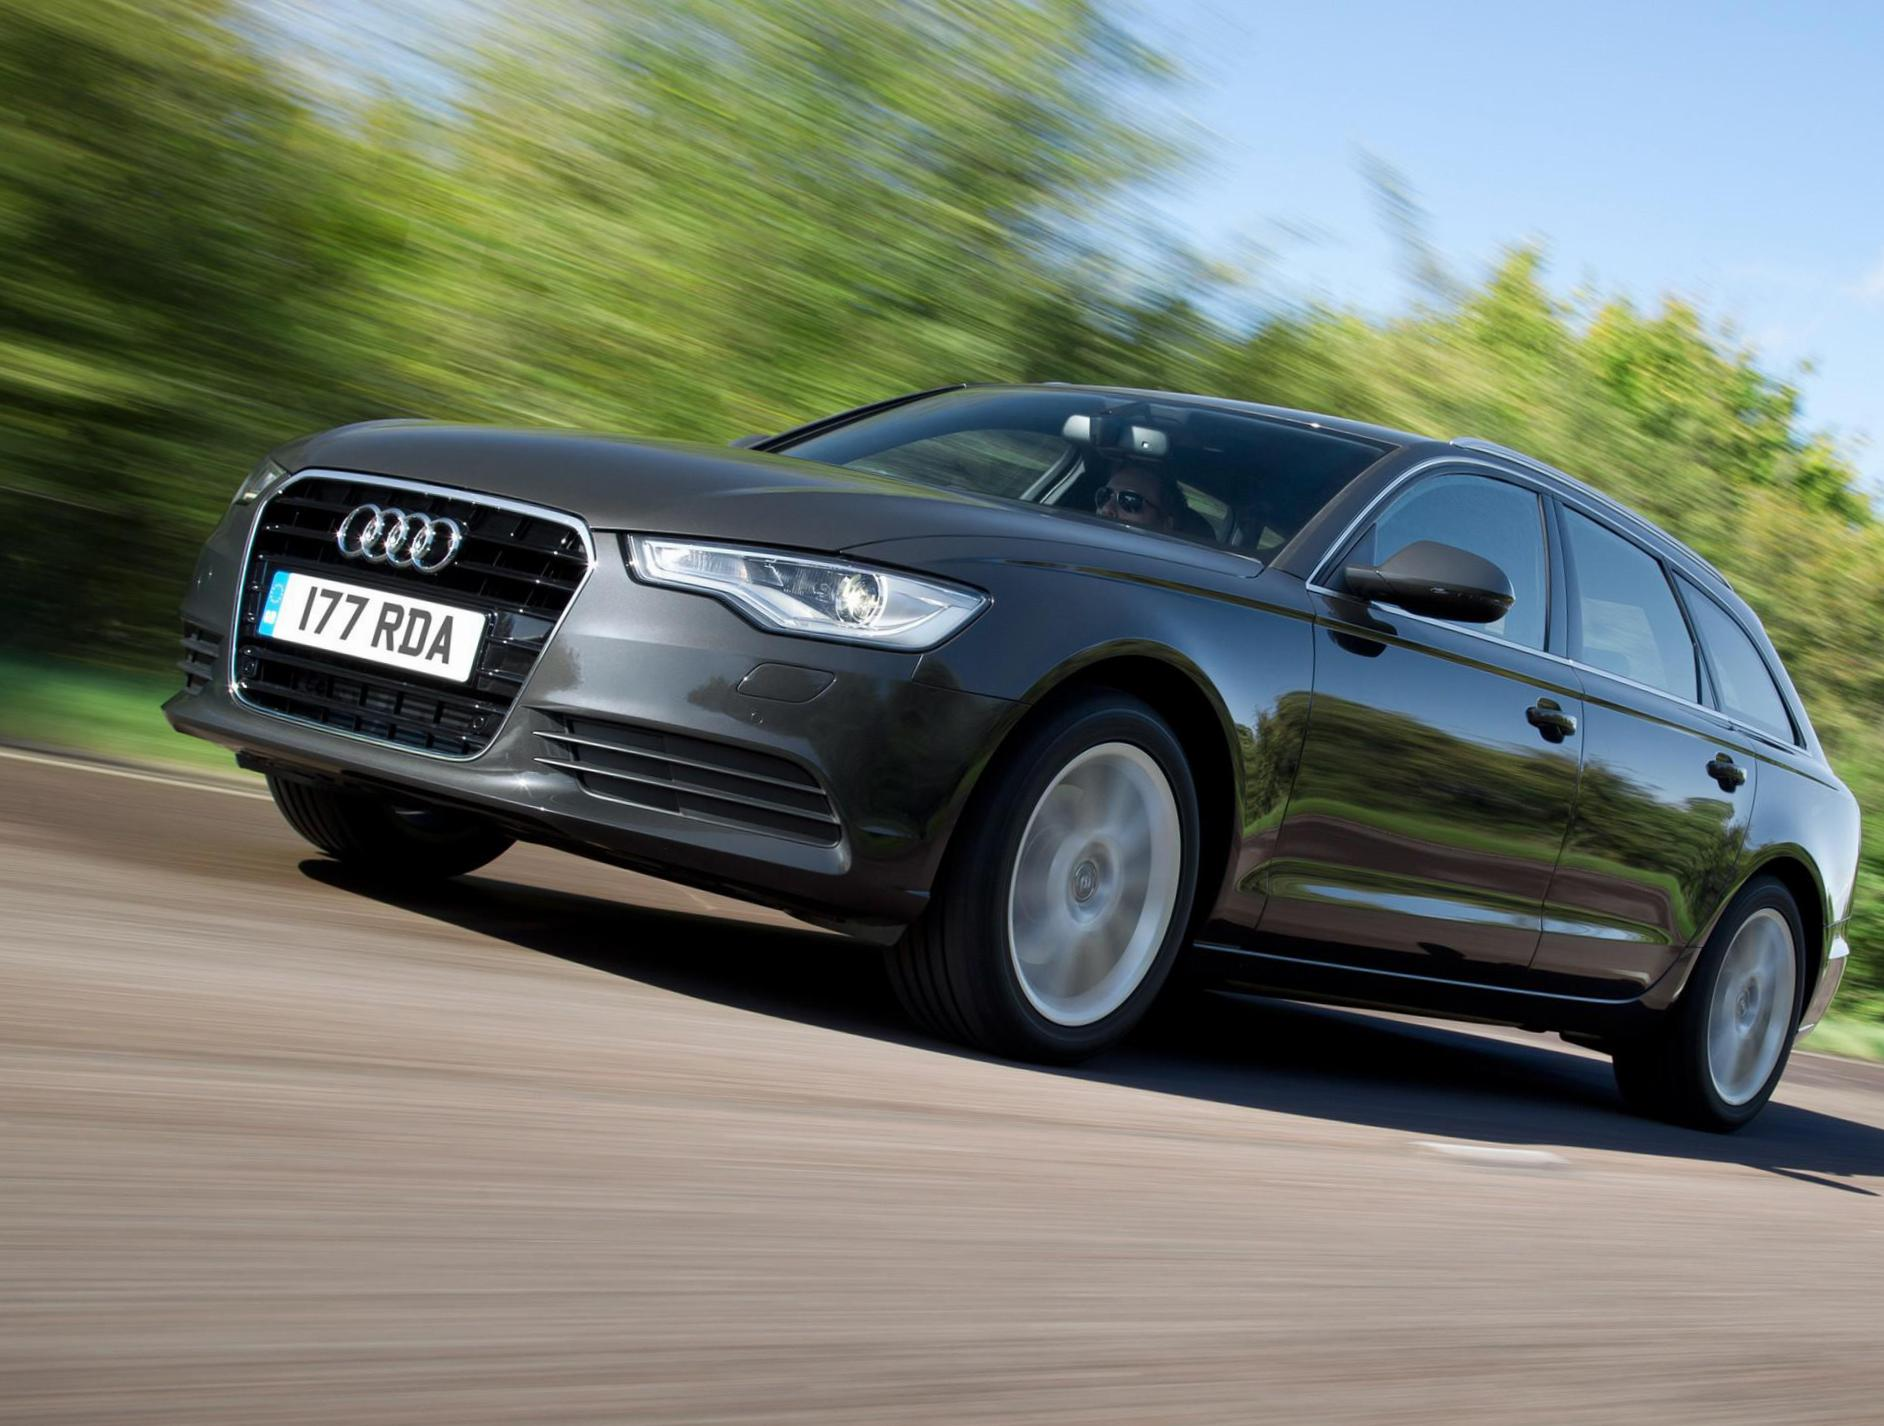 Audi A6 Avant price coupe